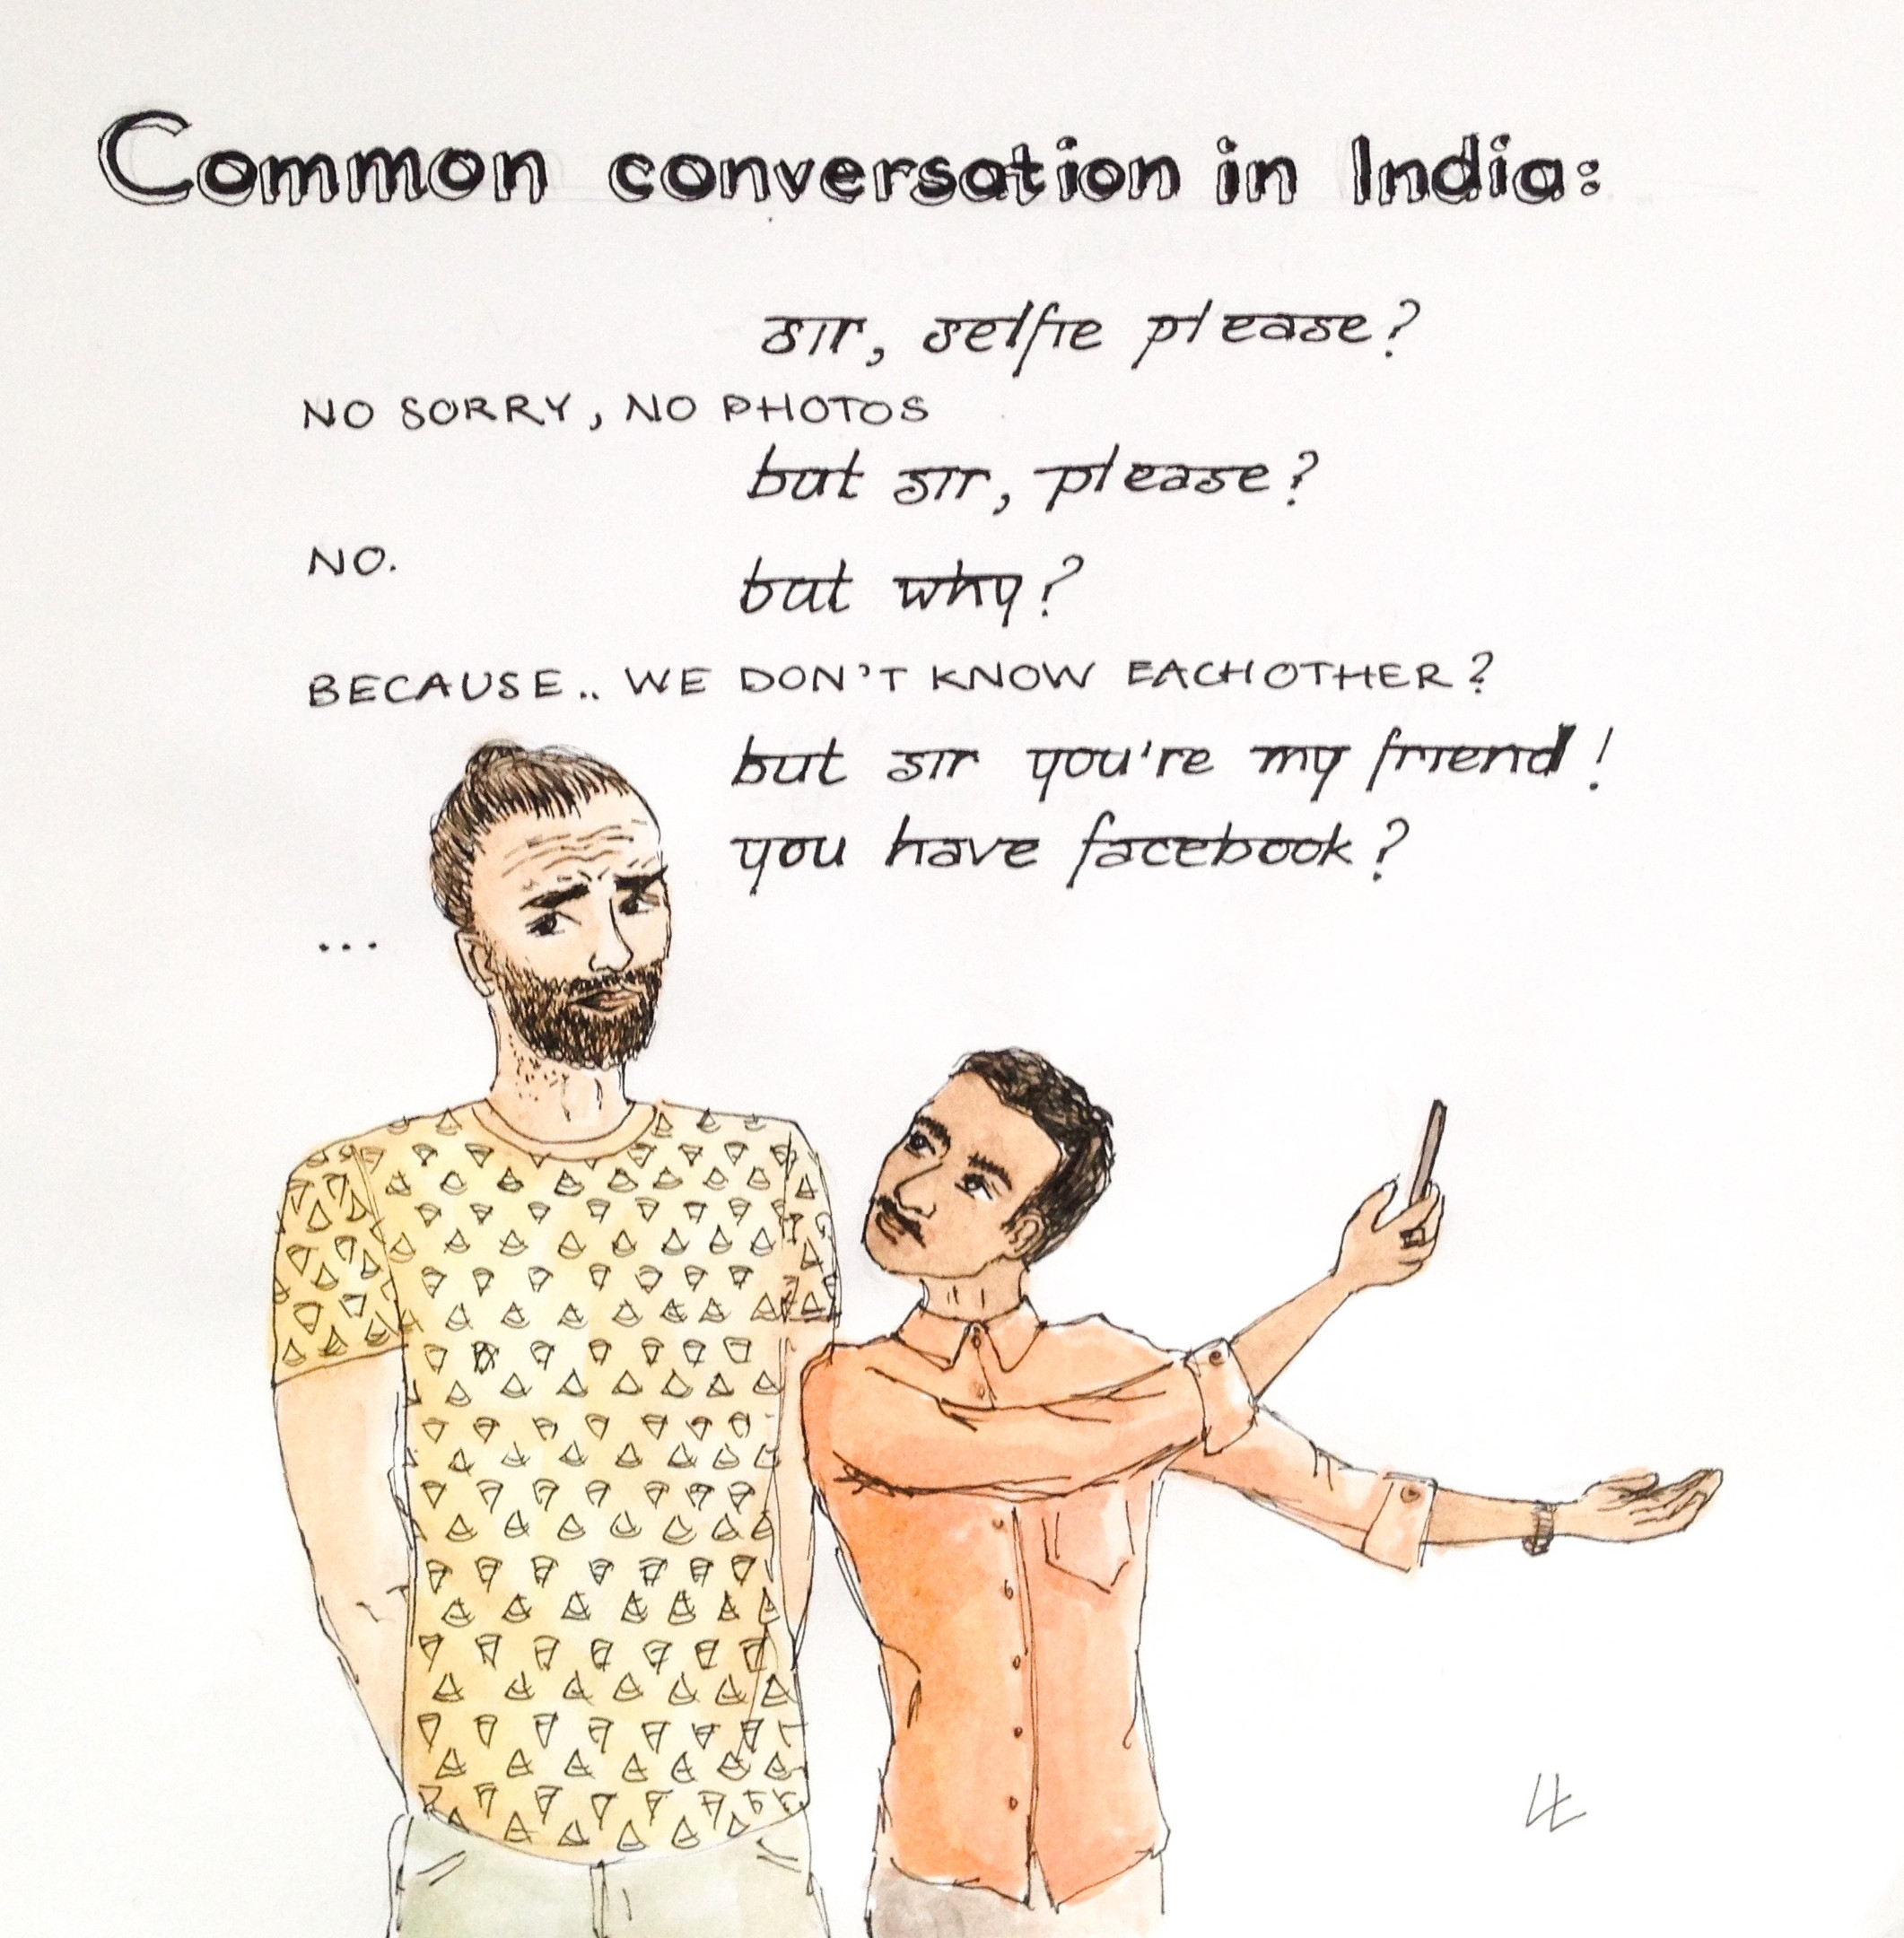 common conversation in India